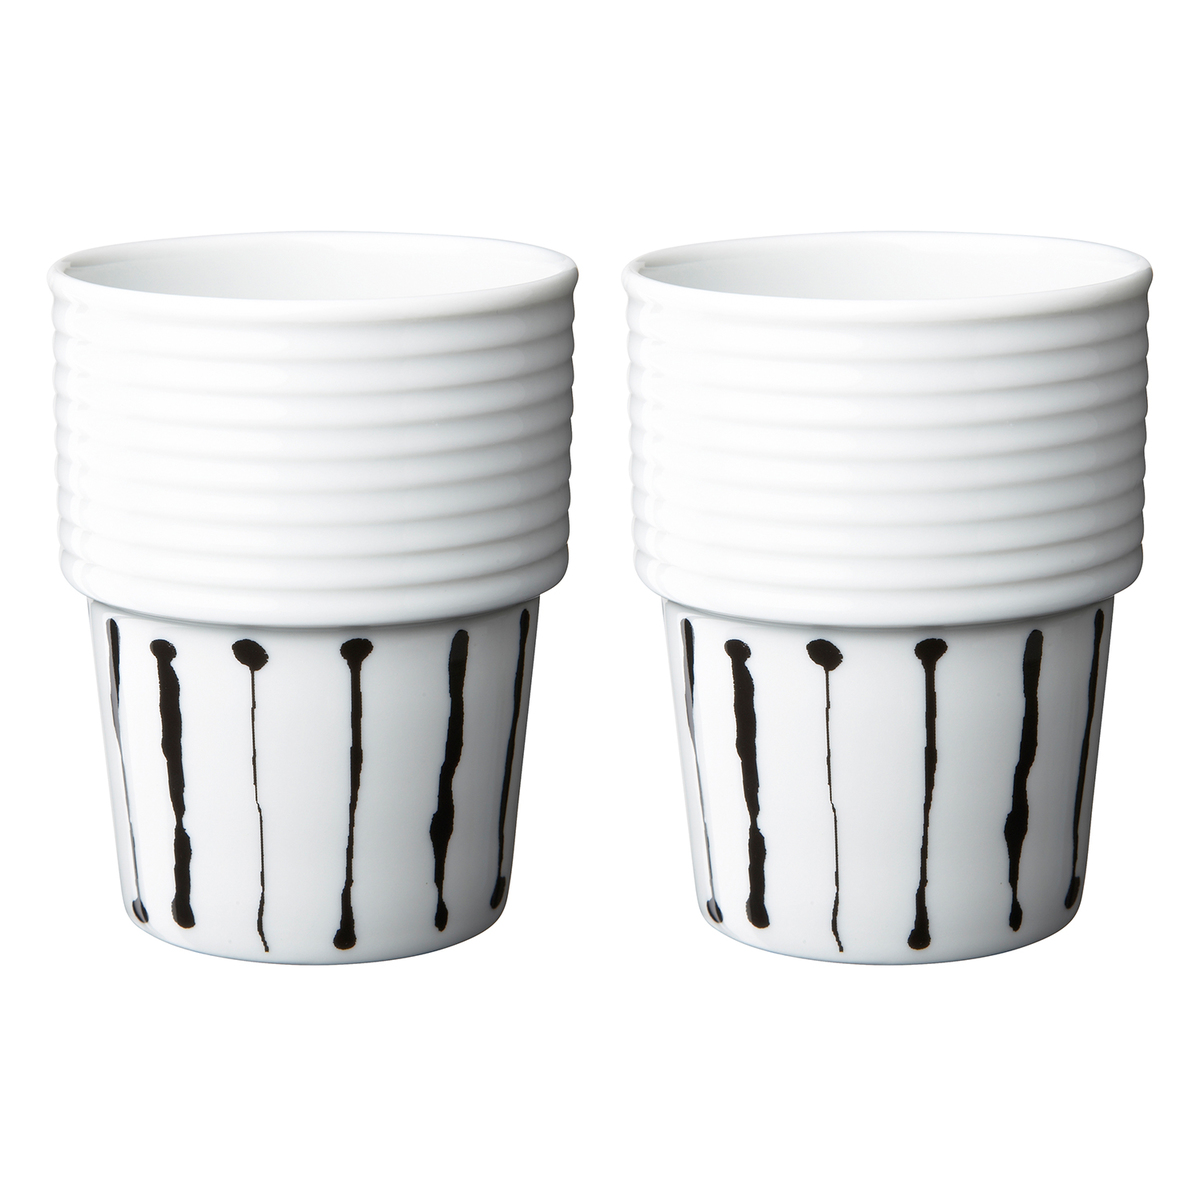 rörstrand filippa k coffee mug 0,31 l, 2 pcs, ink stripe